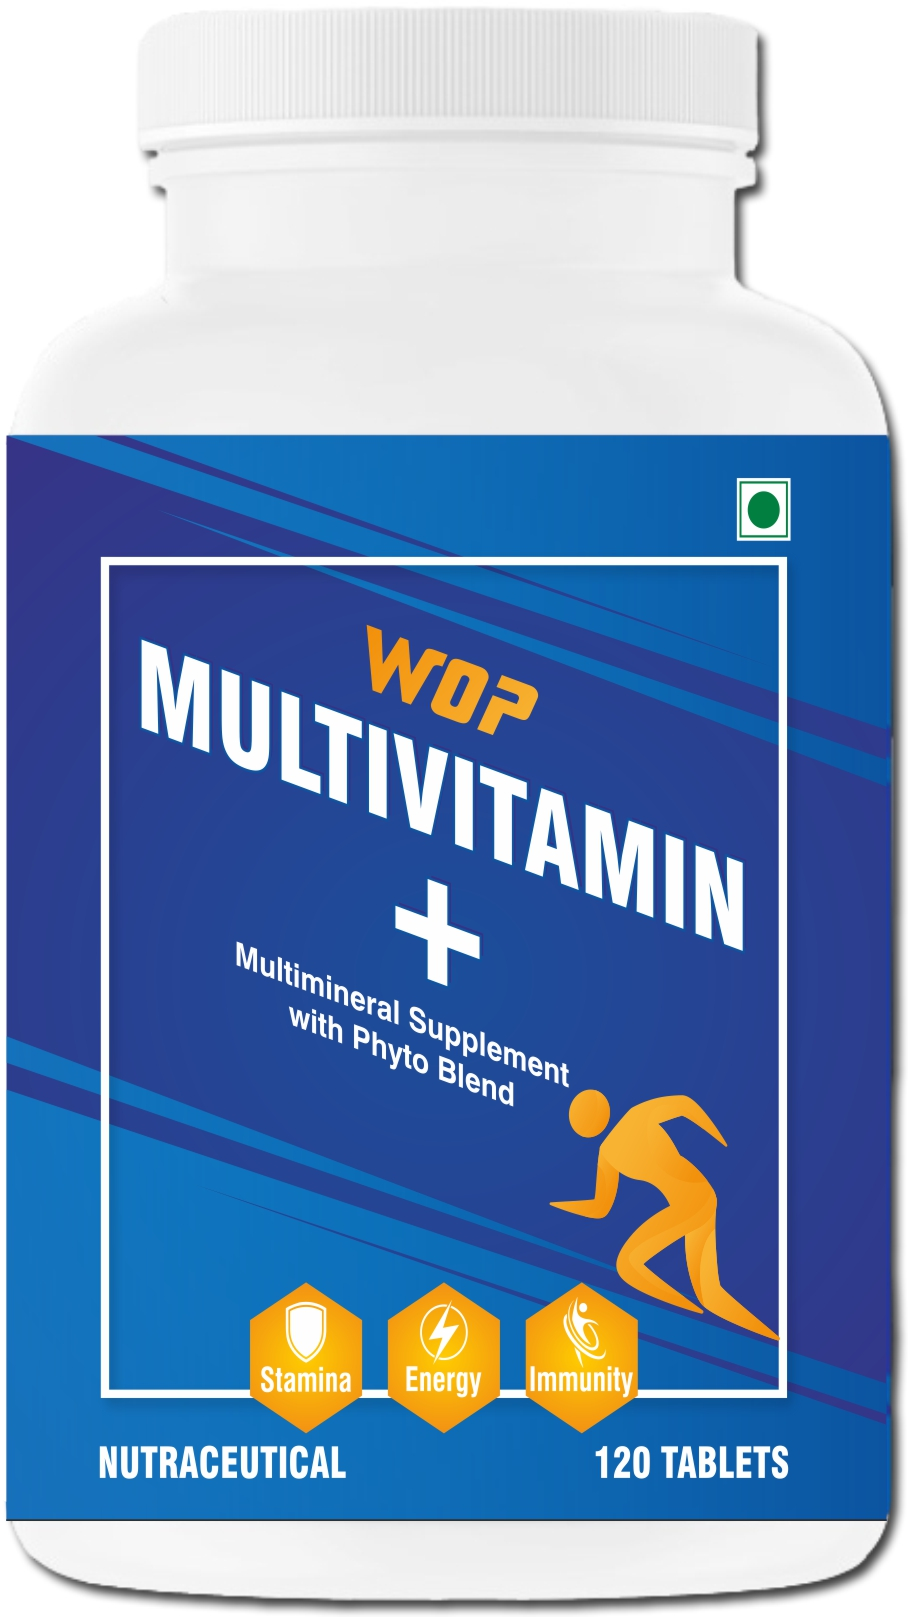 size_070710_WOP_MULTIVITAMIN_TABLET.jpg